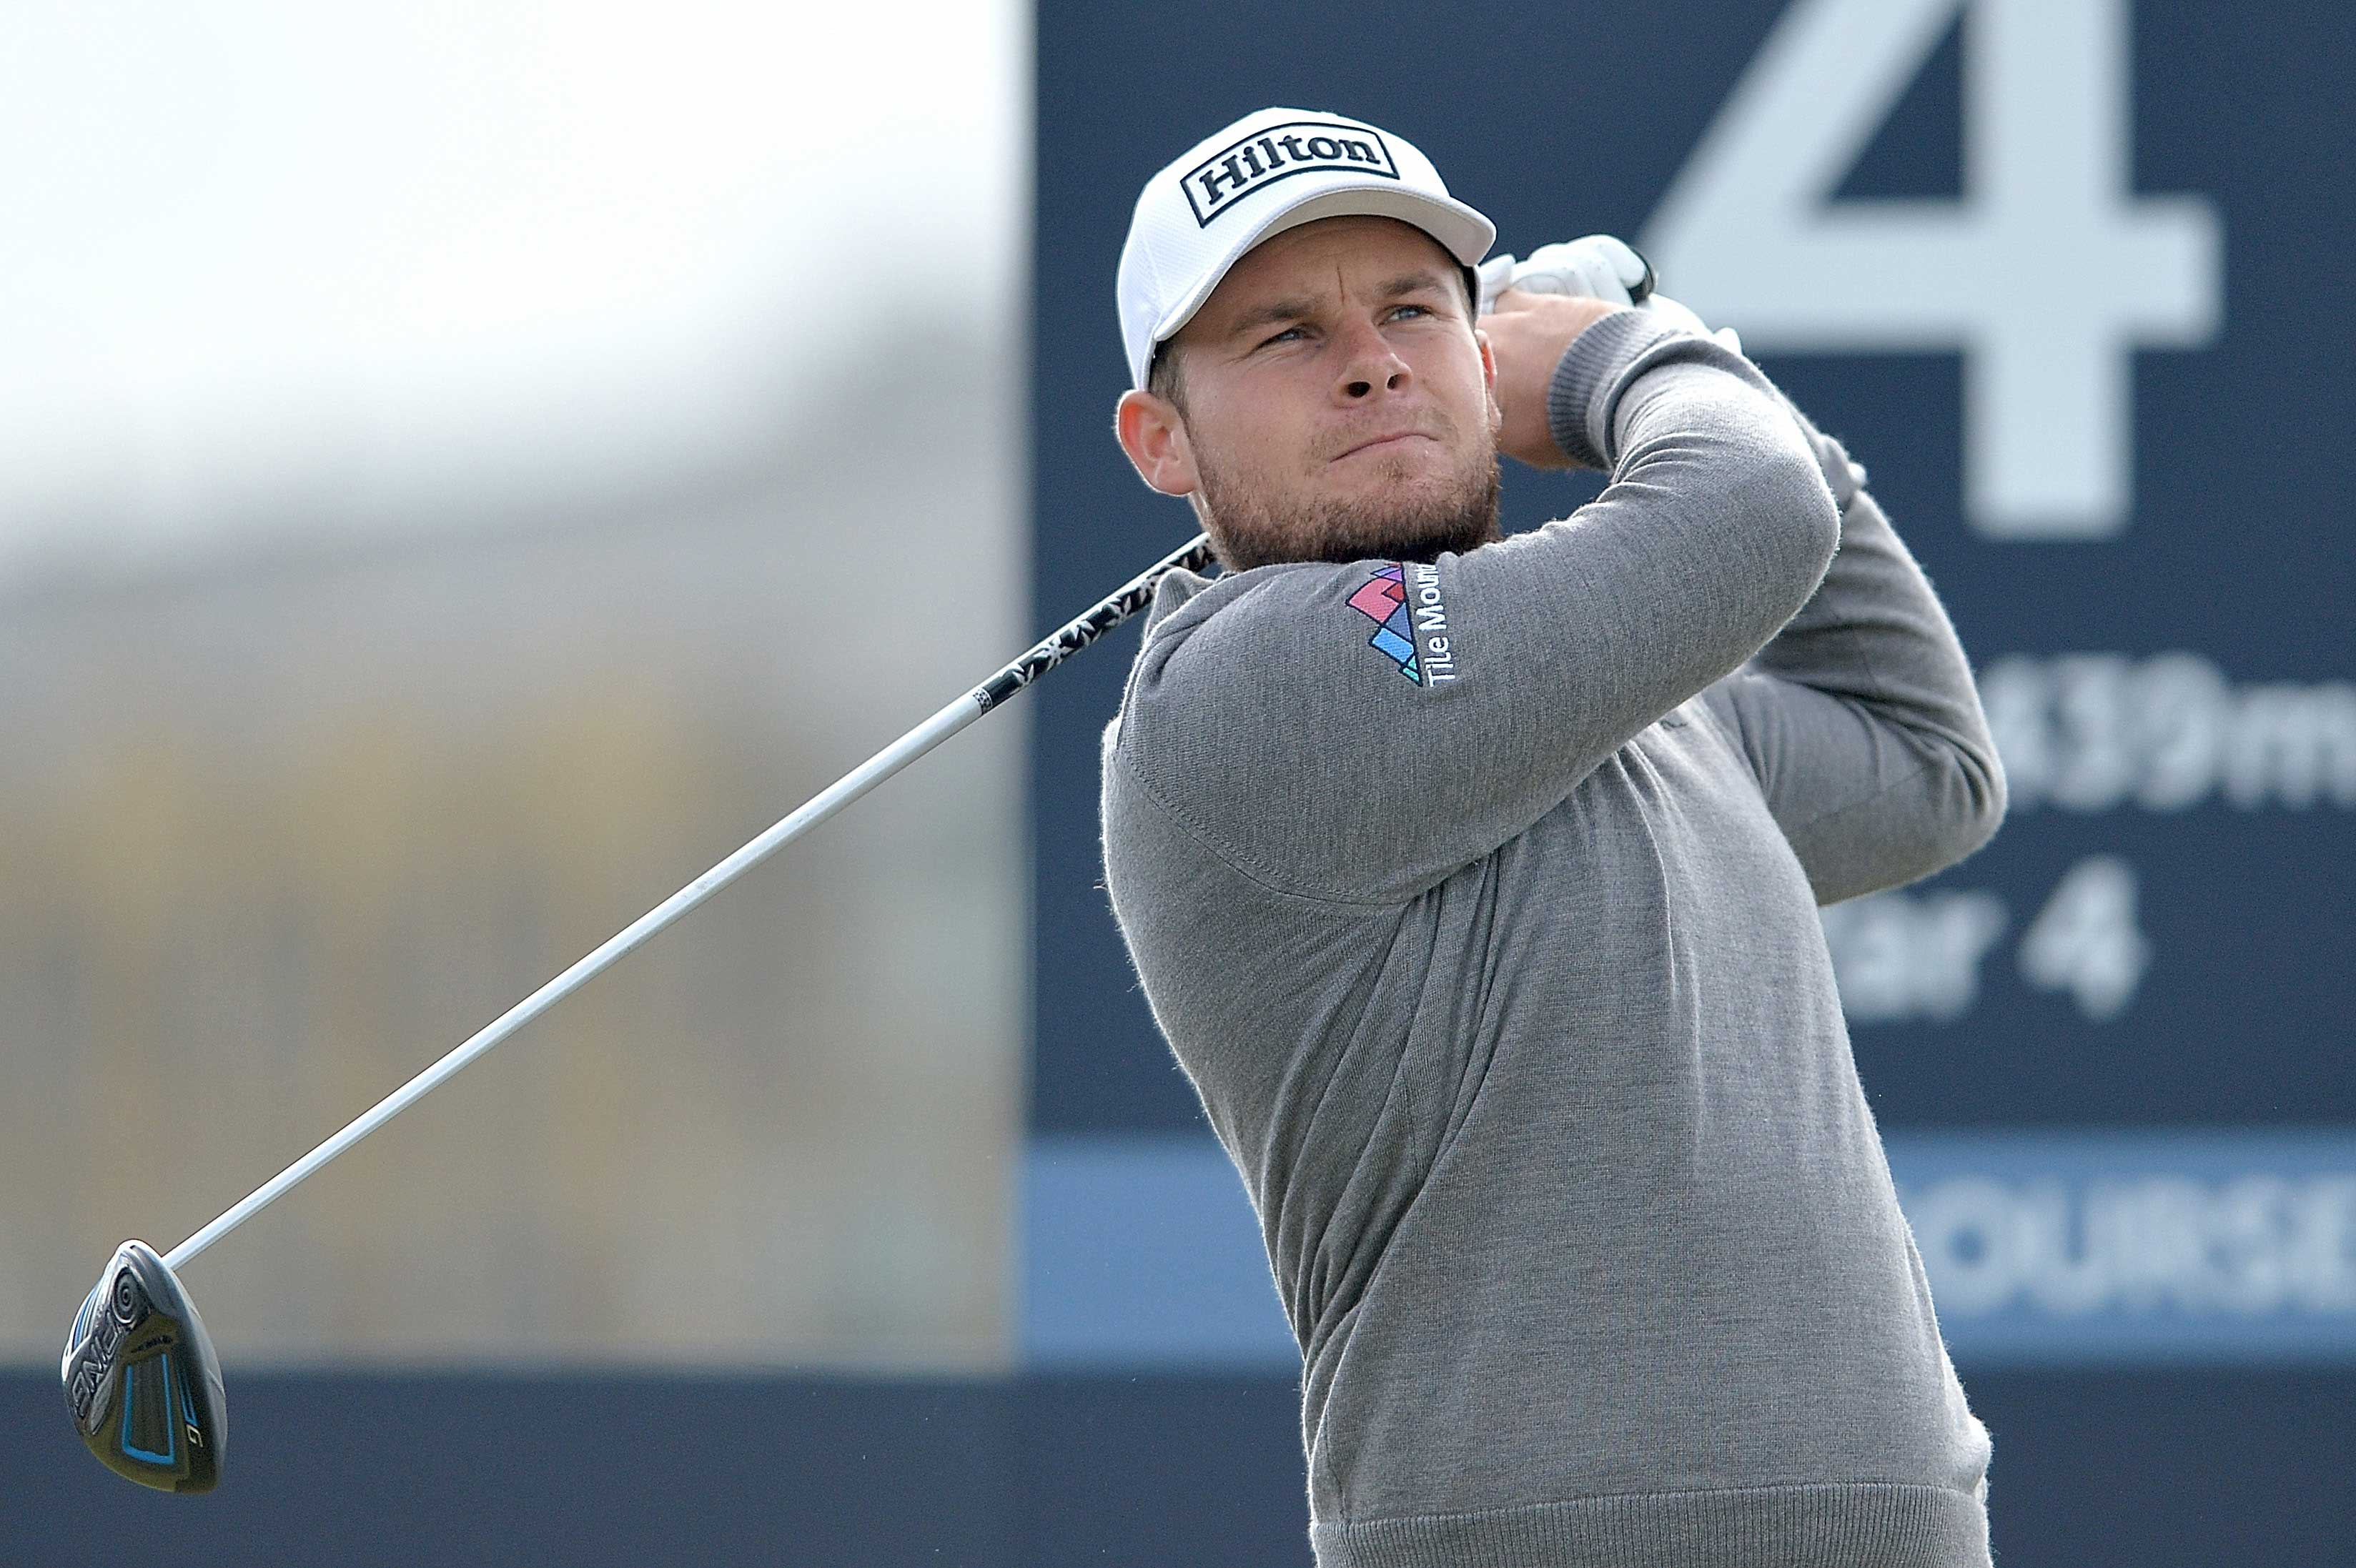 Hatton named European Tour Hilton Golfer of the Month for October